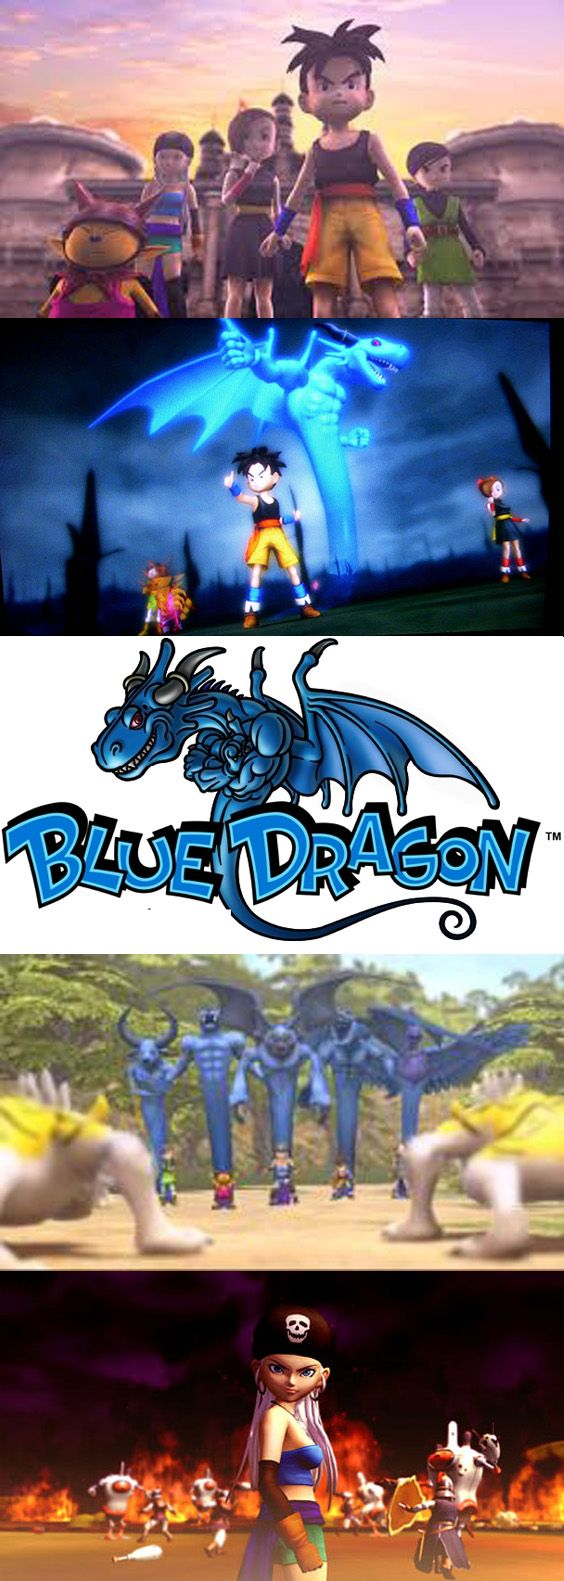 RPG Series BlueDragon comes for the creators of